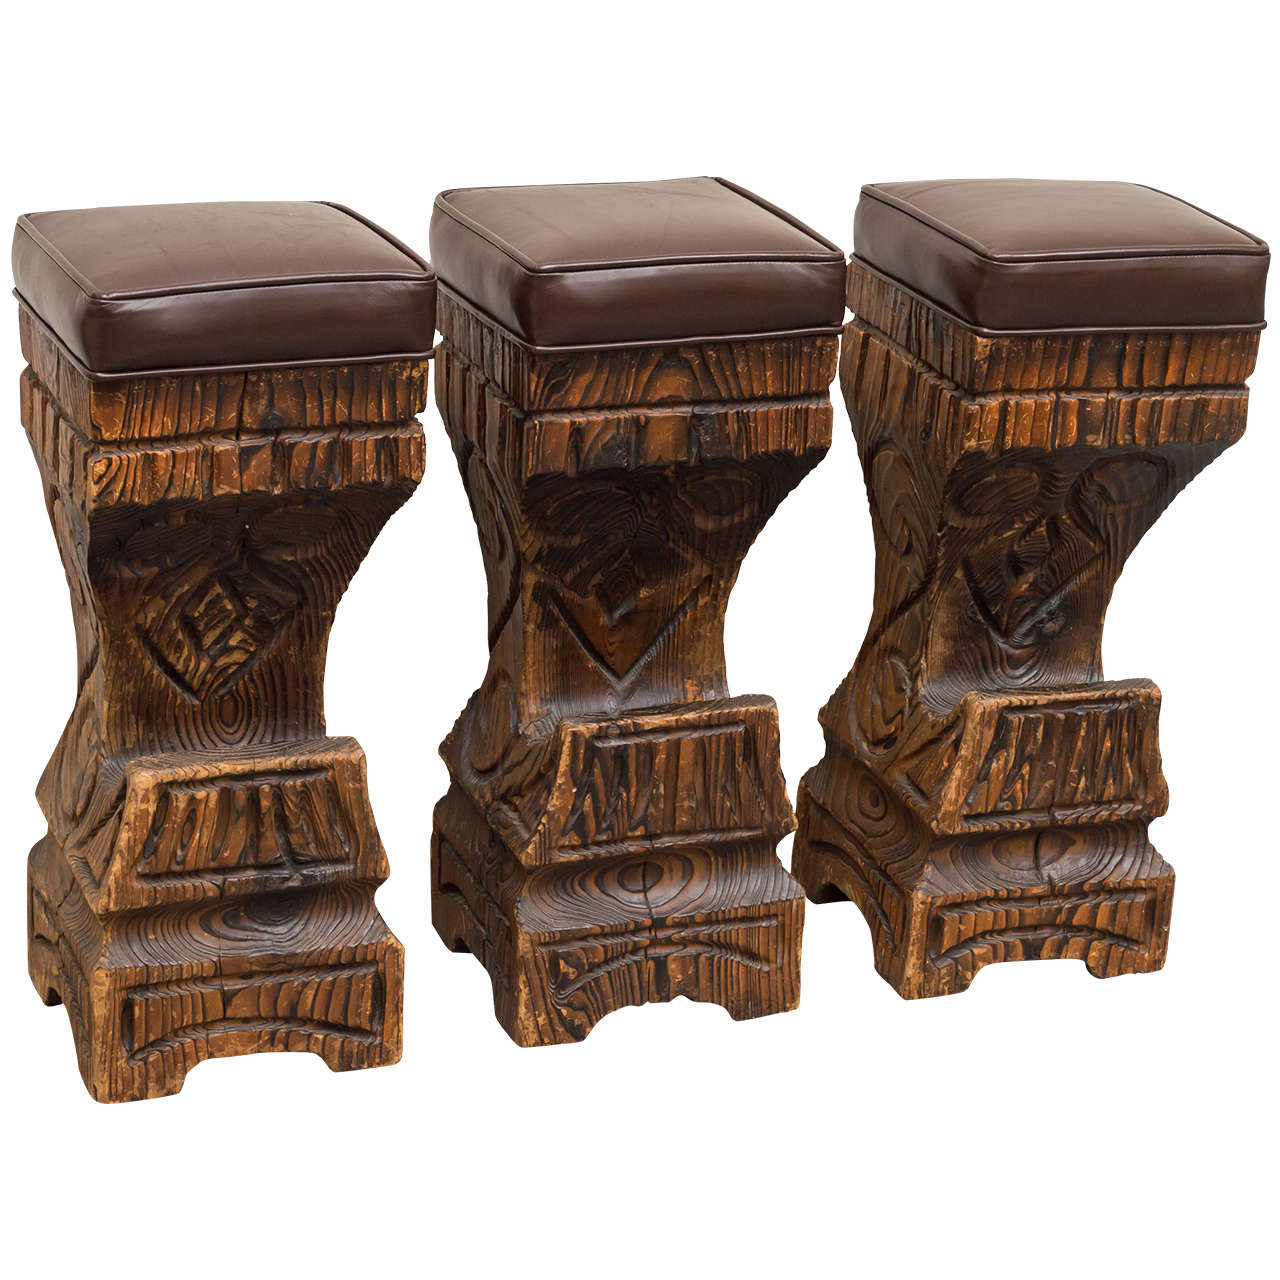 Three 1970s Witco Carved Tiki Bar Stools With Leather Seats At 1stdibs